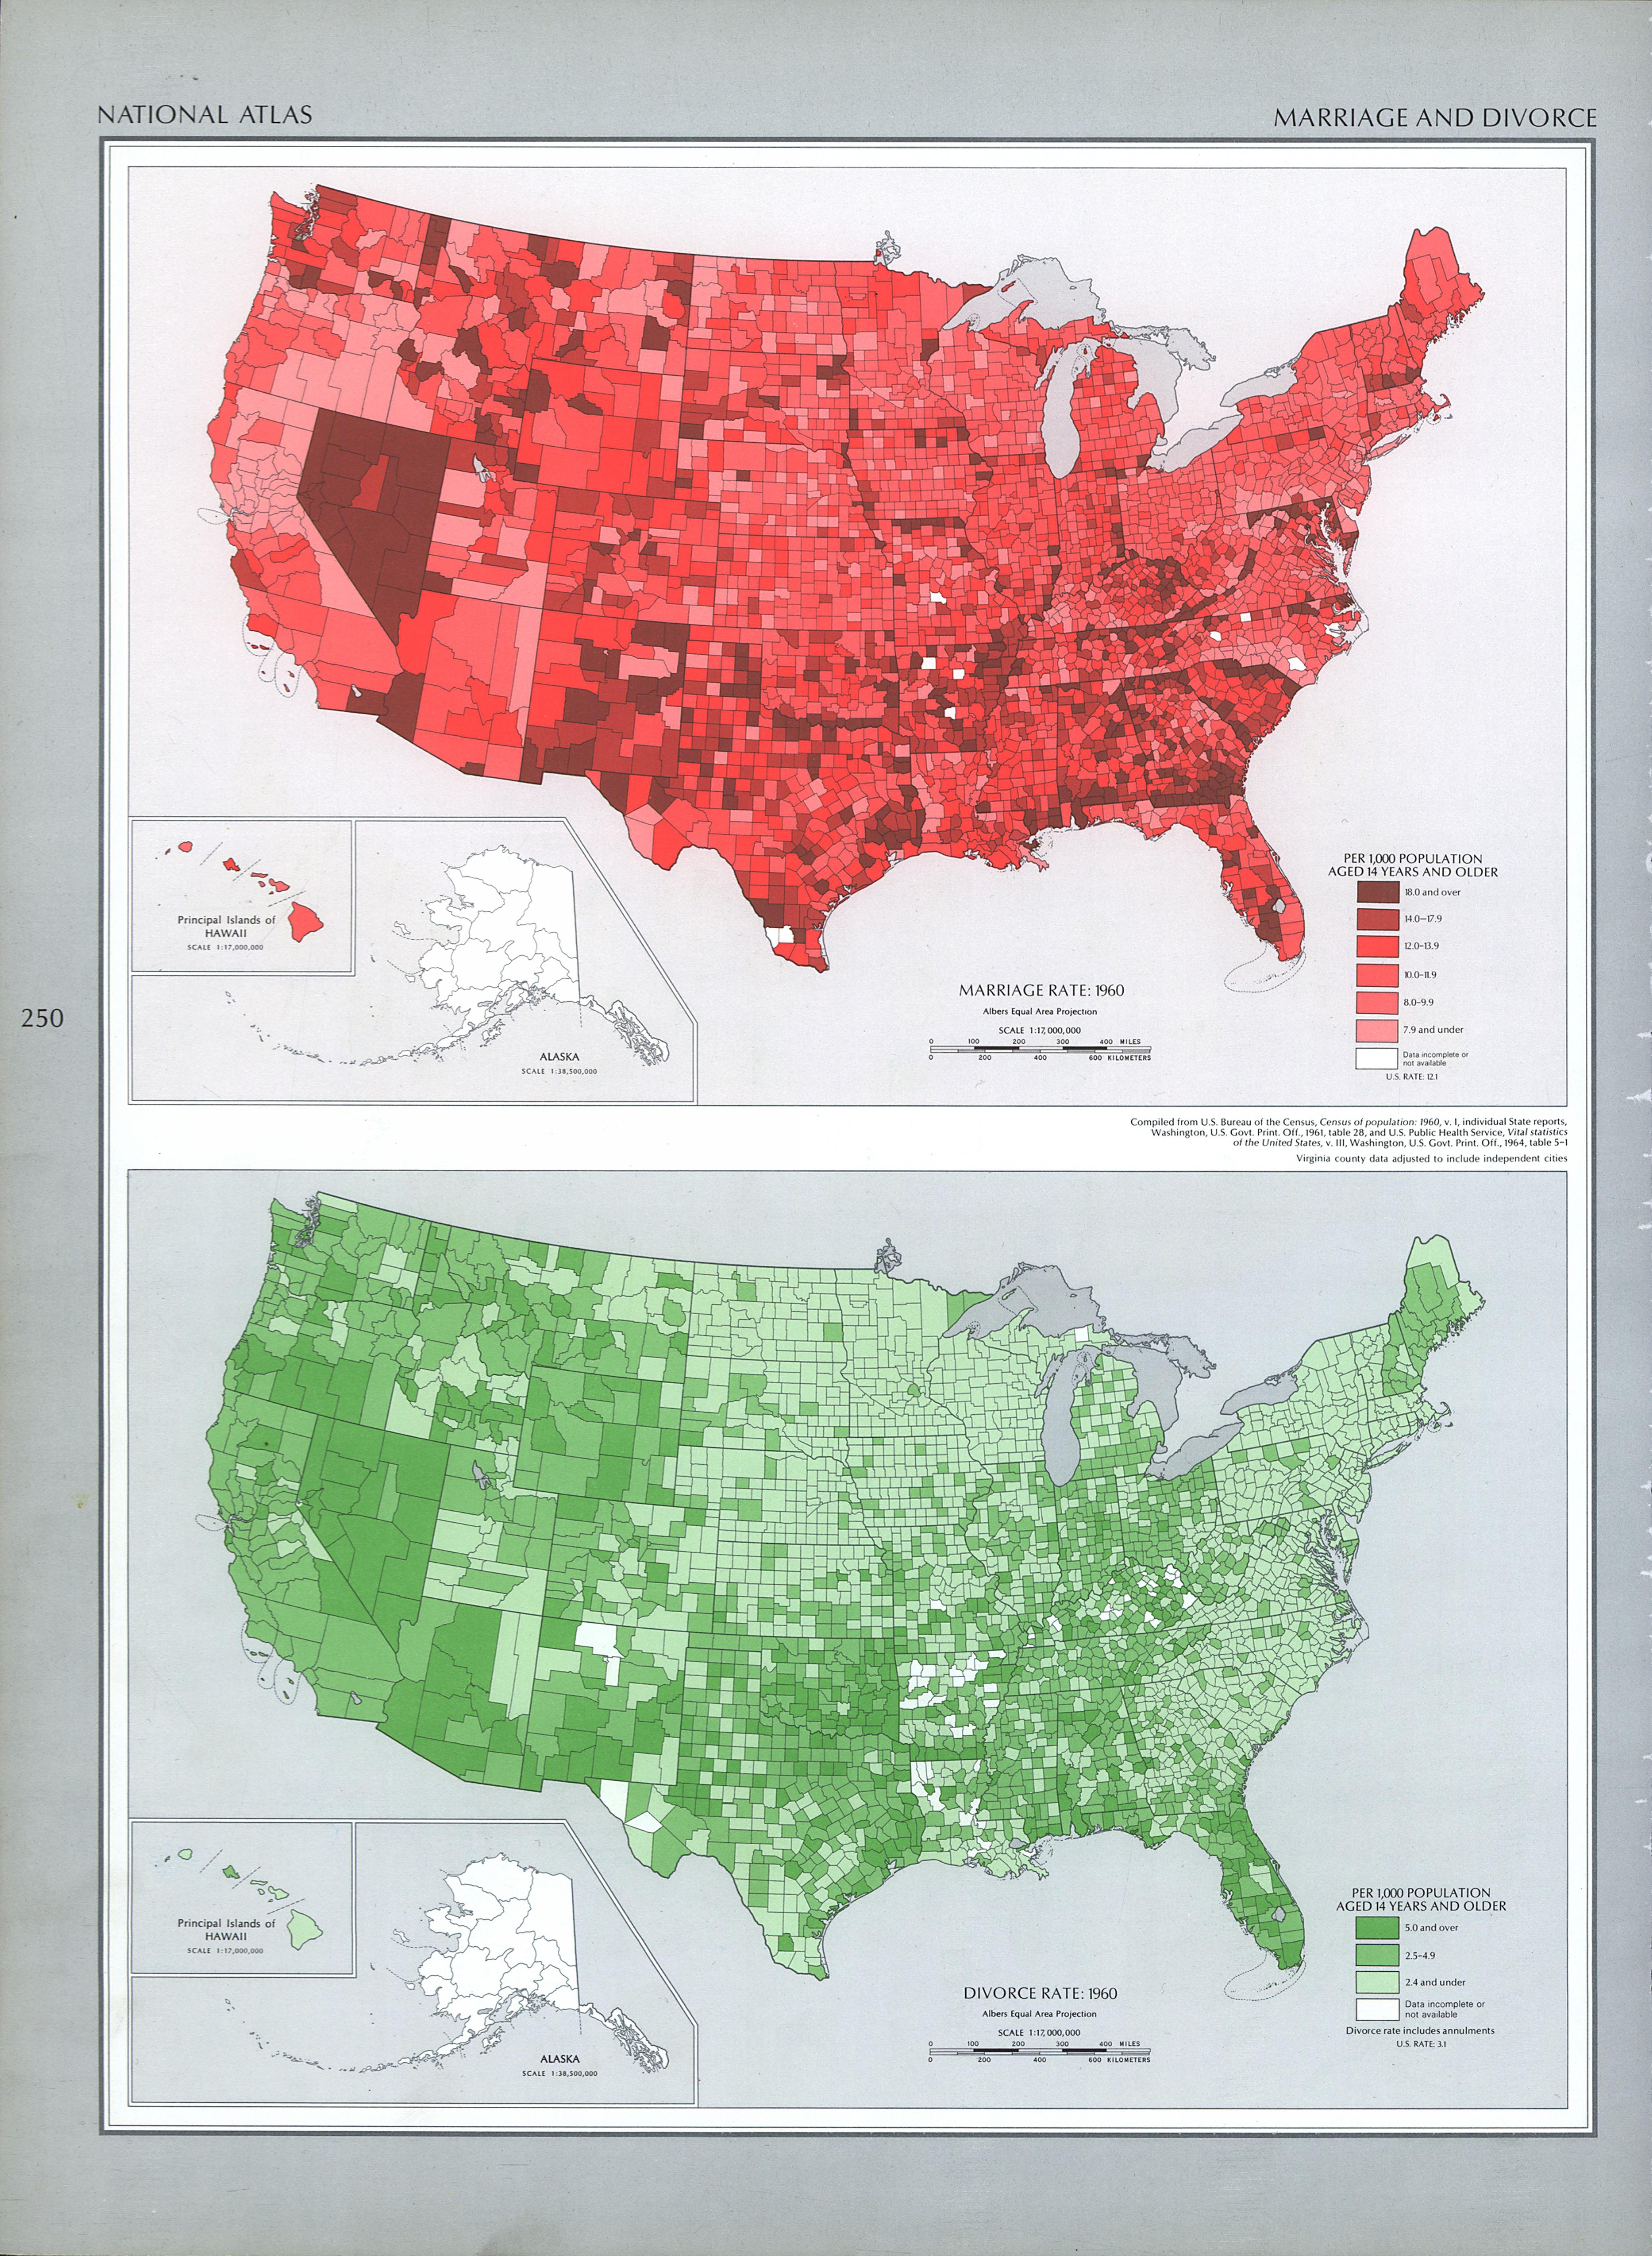 United States Marriage and Divorce Map